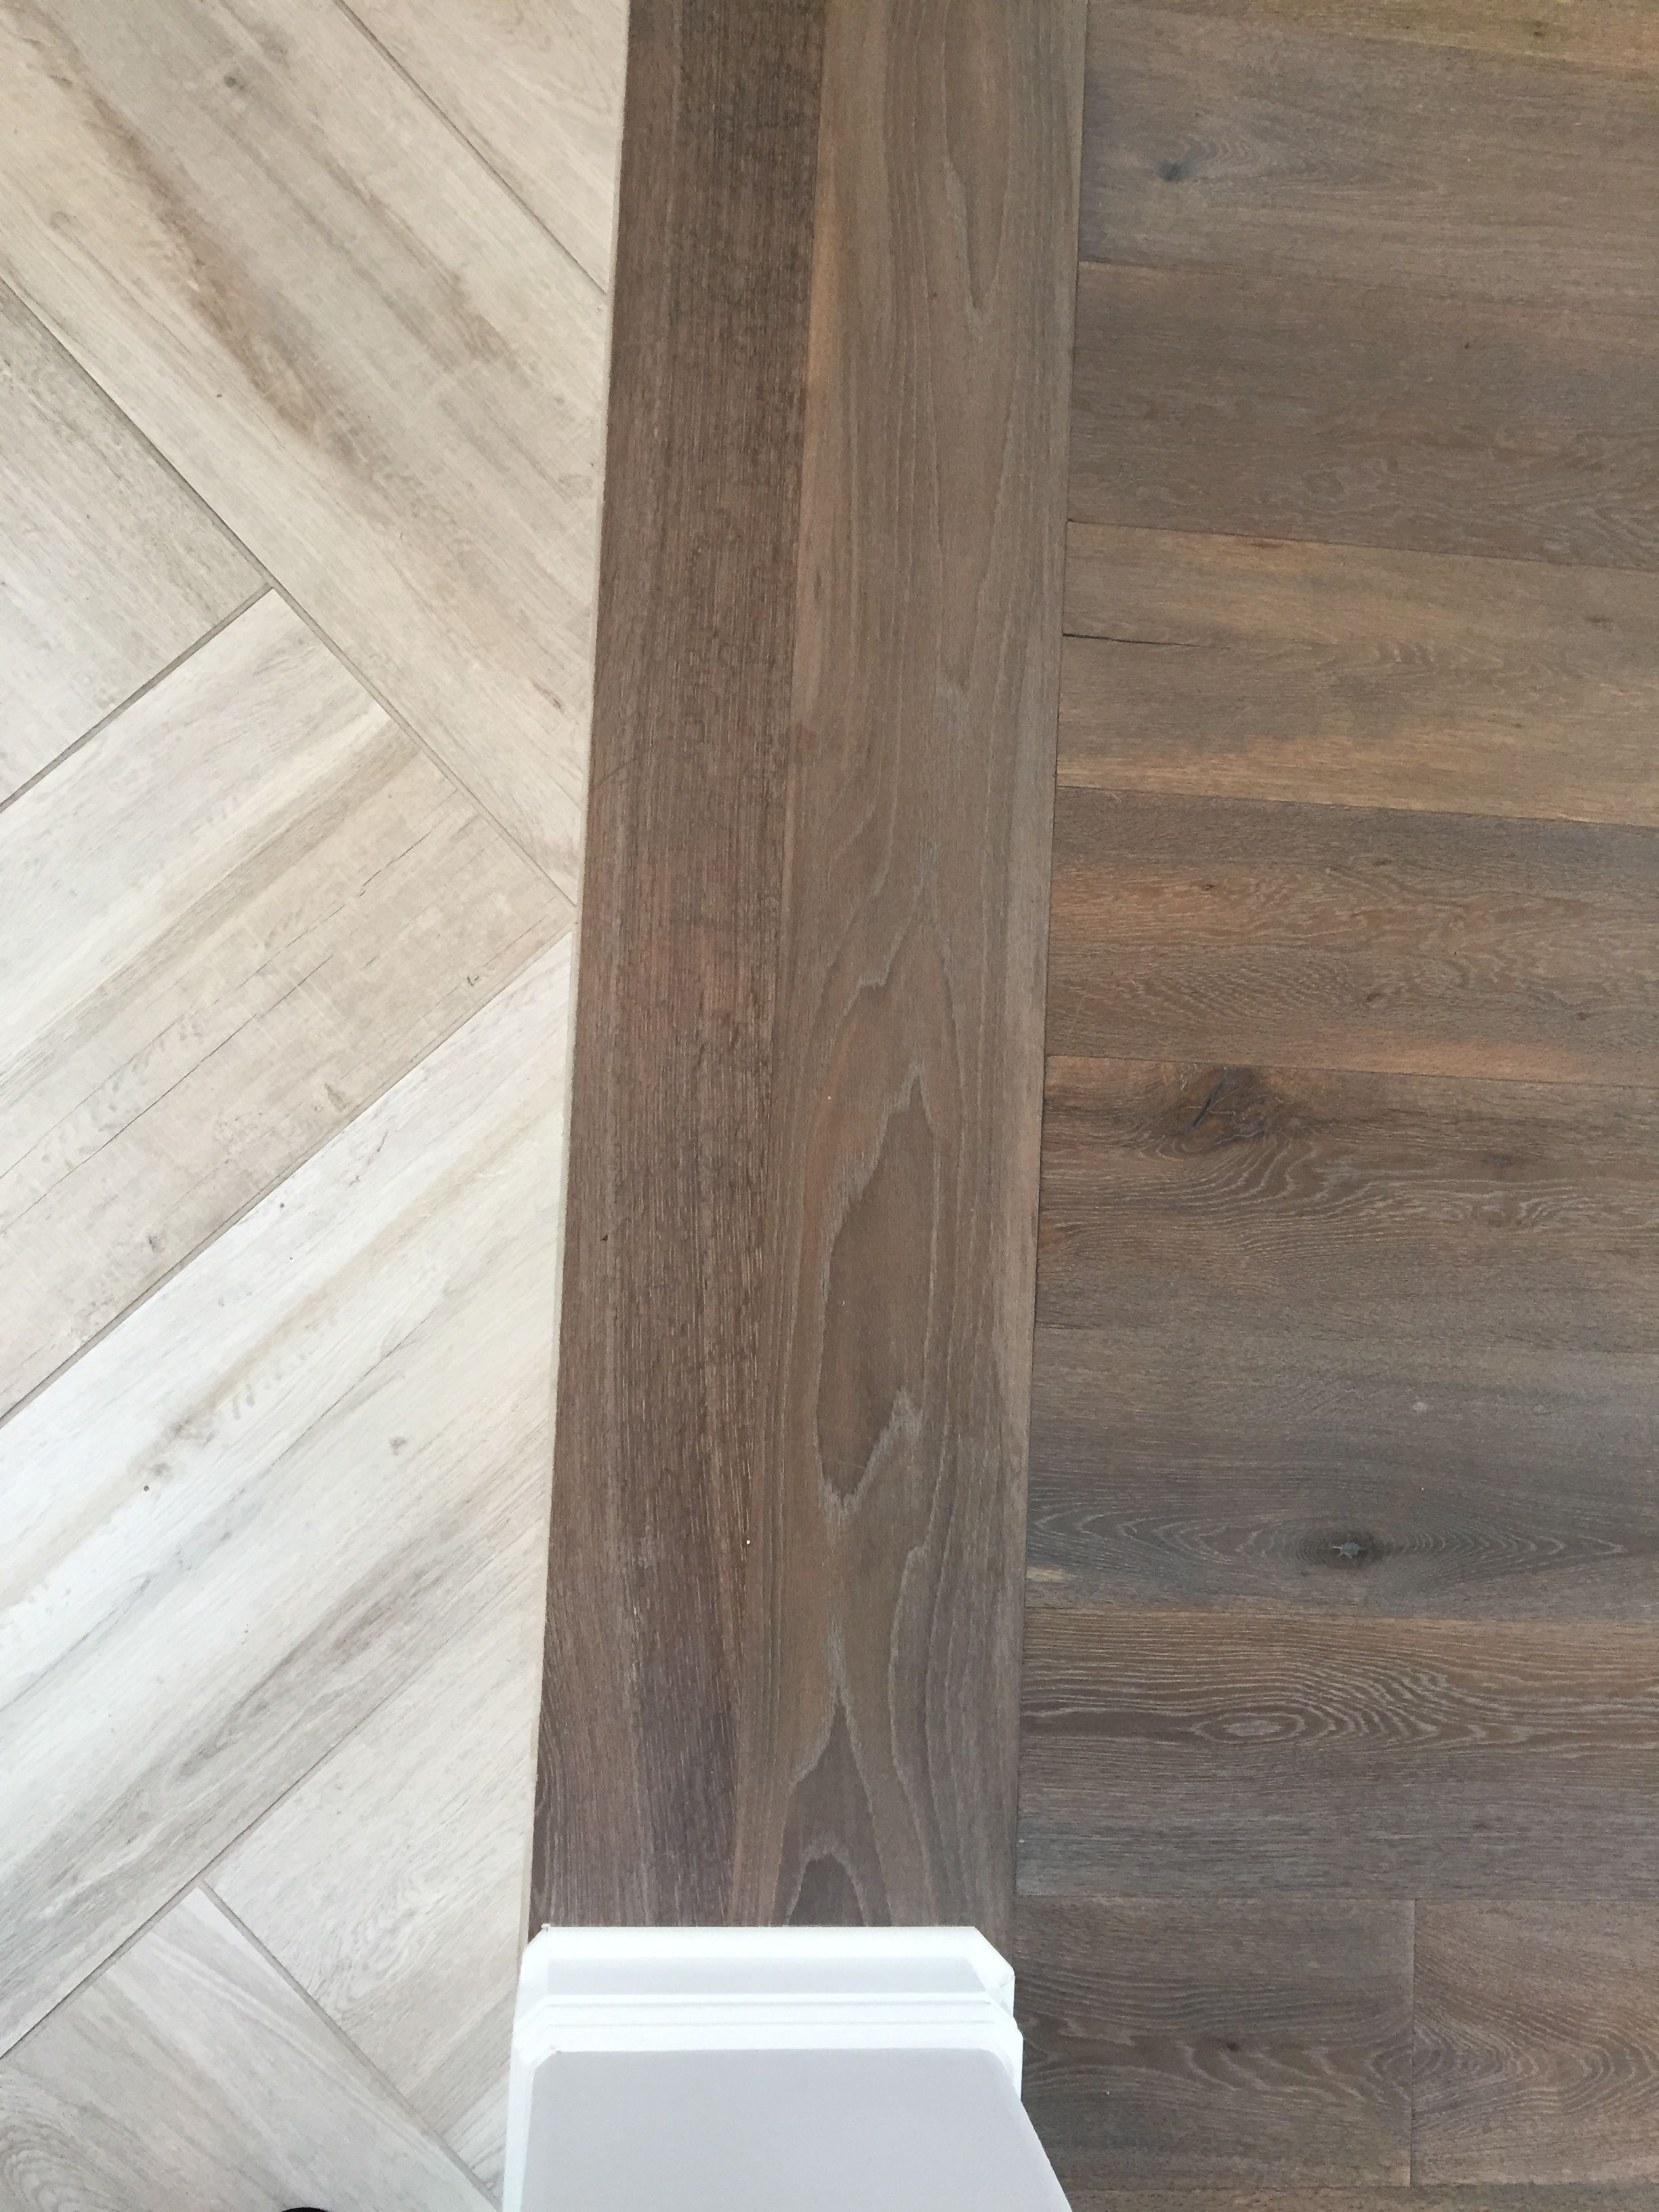 Can Hardwood Floors Be Installed On Concrete Of Floor Transition Laminate to Herringbone Tile Pattern Model In Floor Transition Laminate to Herringbone Tile Pattern Herringbone Tile Pattern Herringbone Wood Floor